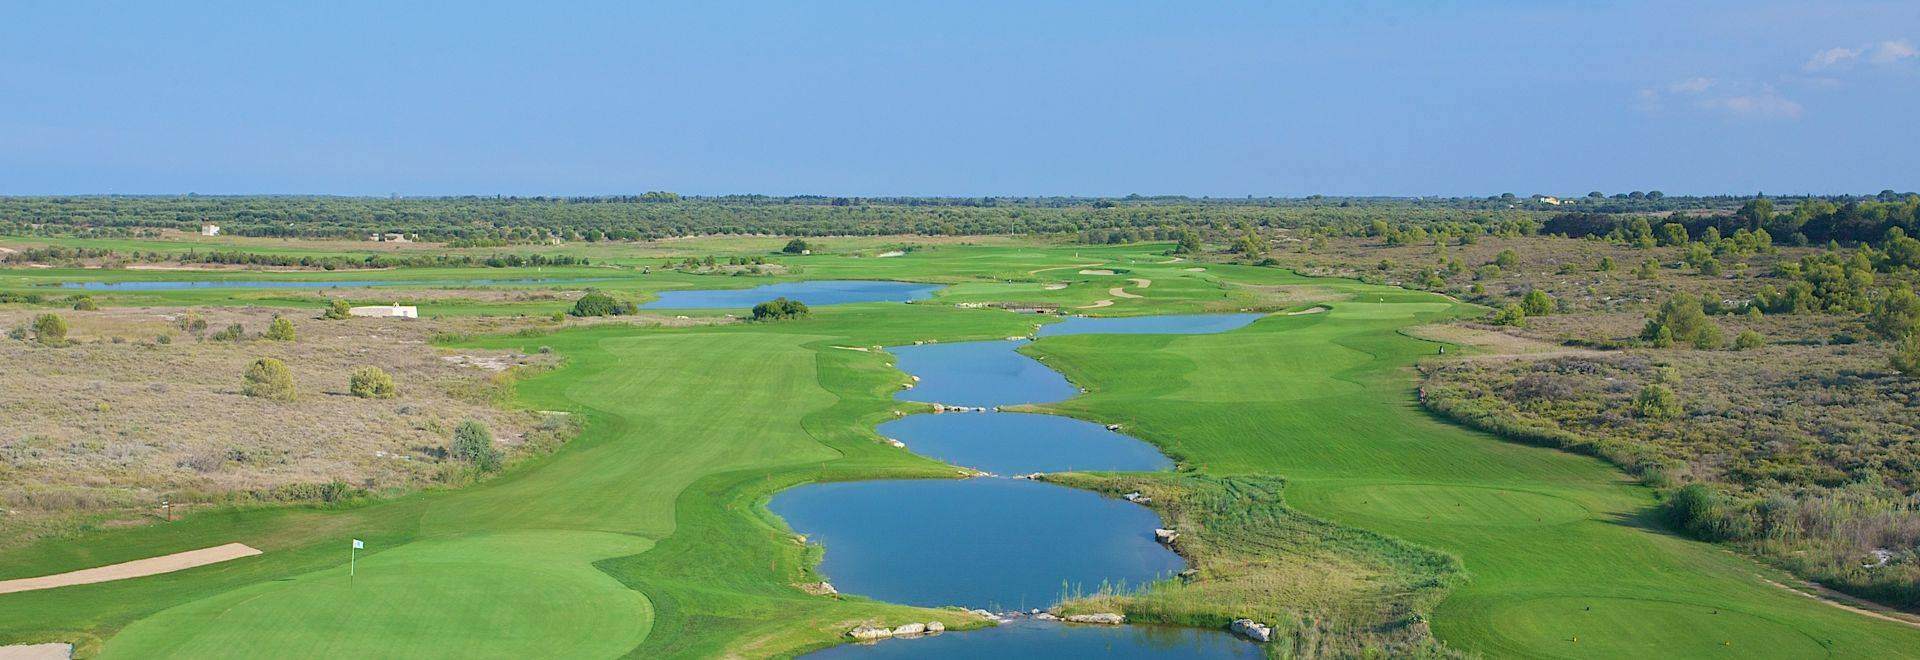 Golf Acaya Golf Resort 3 35271085802 O